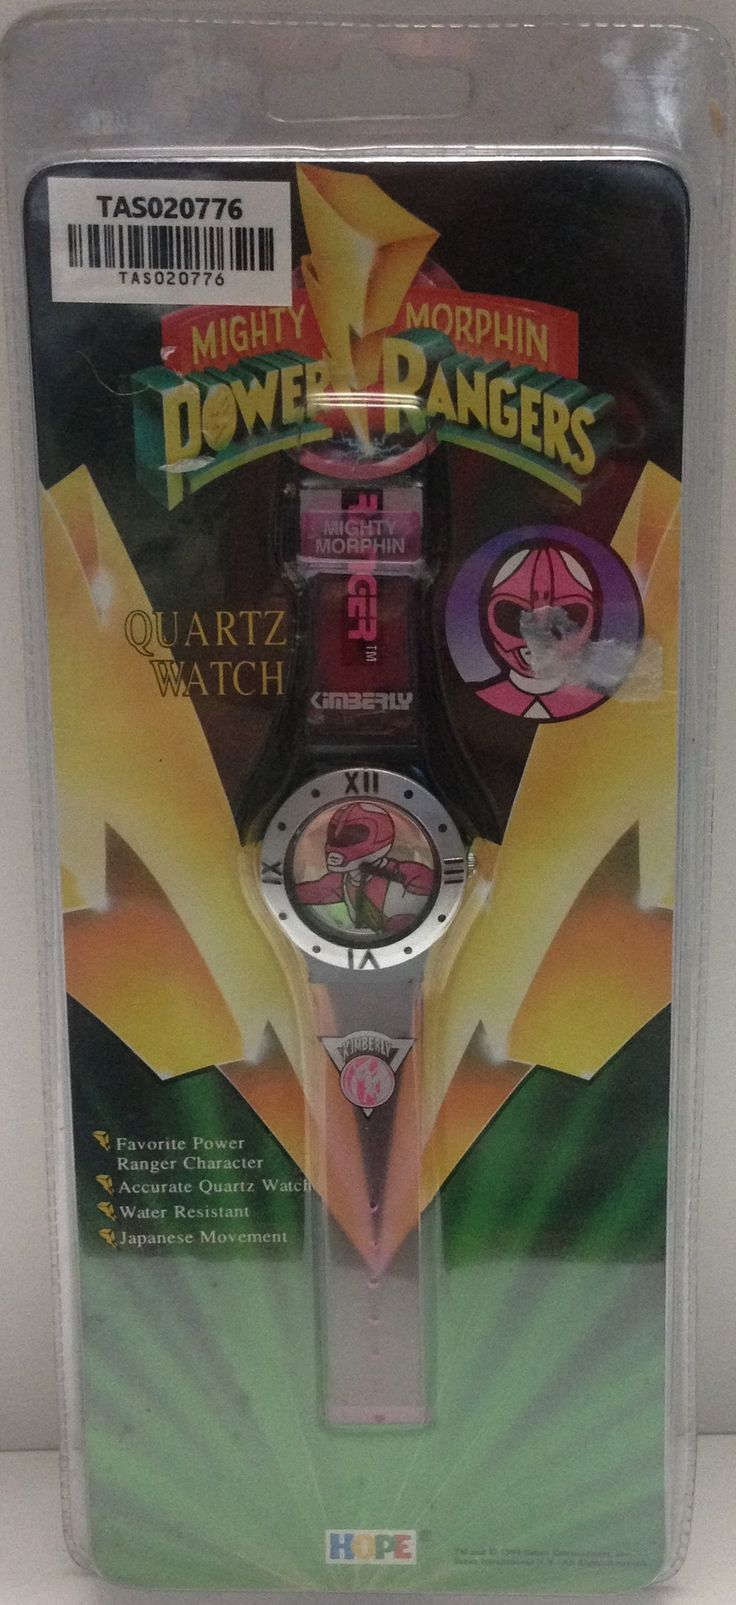 (TAS020776) - Mighty Morphin Power Rangers Quartz Watch - Pink Ranger: Angry Spider, Action Figures, Power Rangers, Spider Vintage, Rangers Quartz